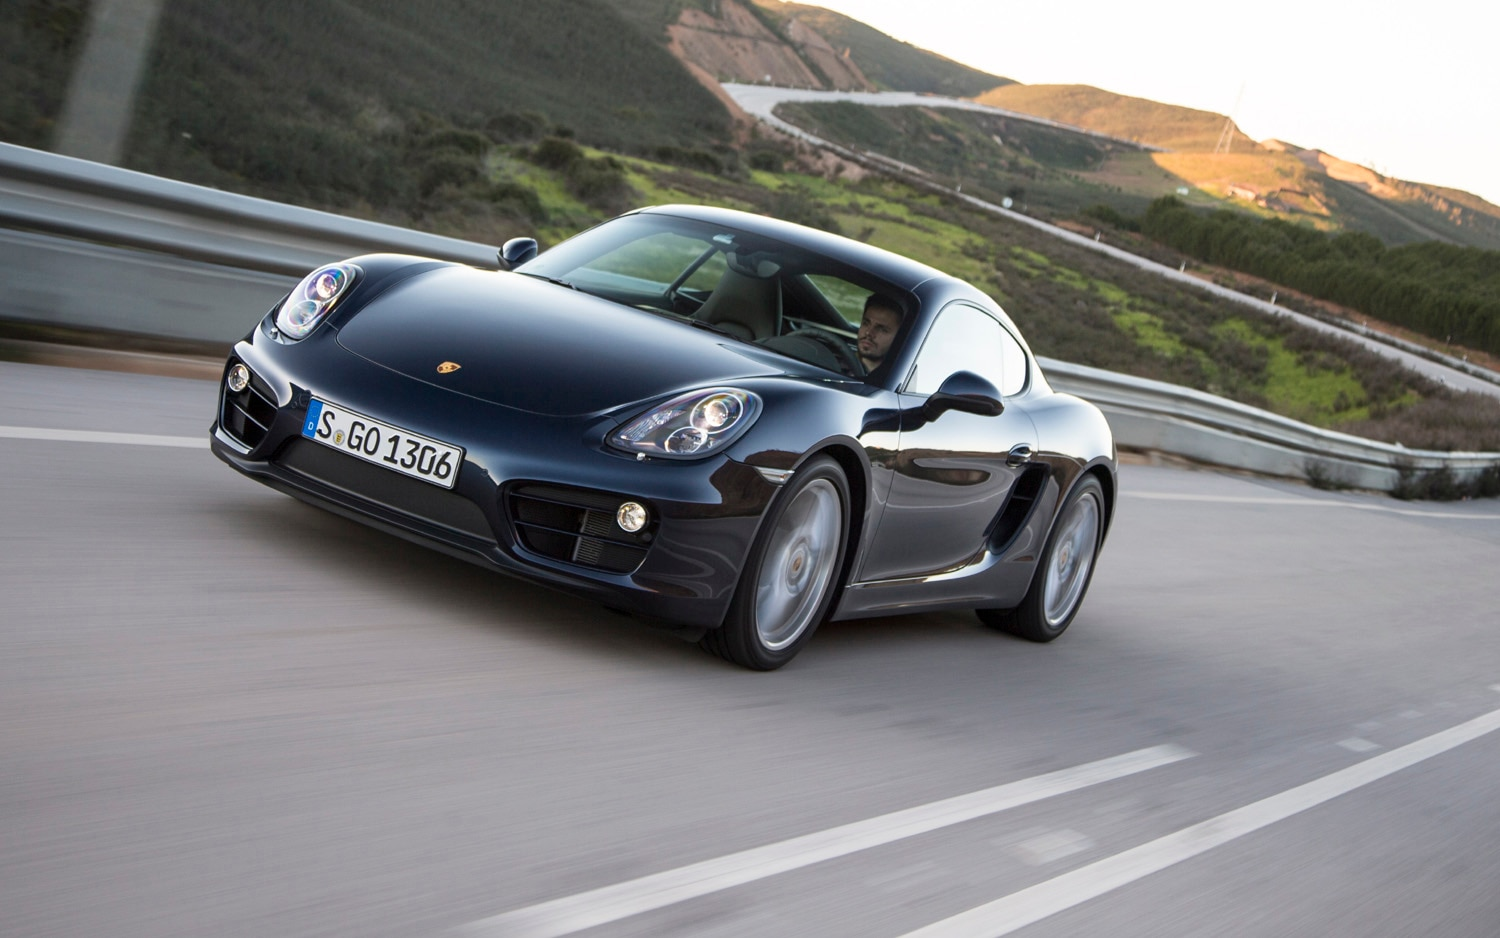 2014 Porsche Cayman Front Left View